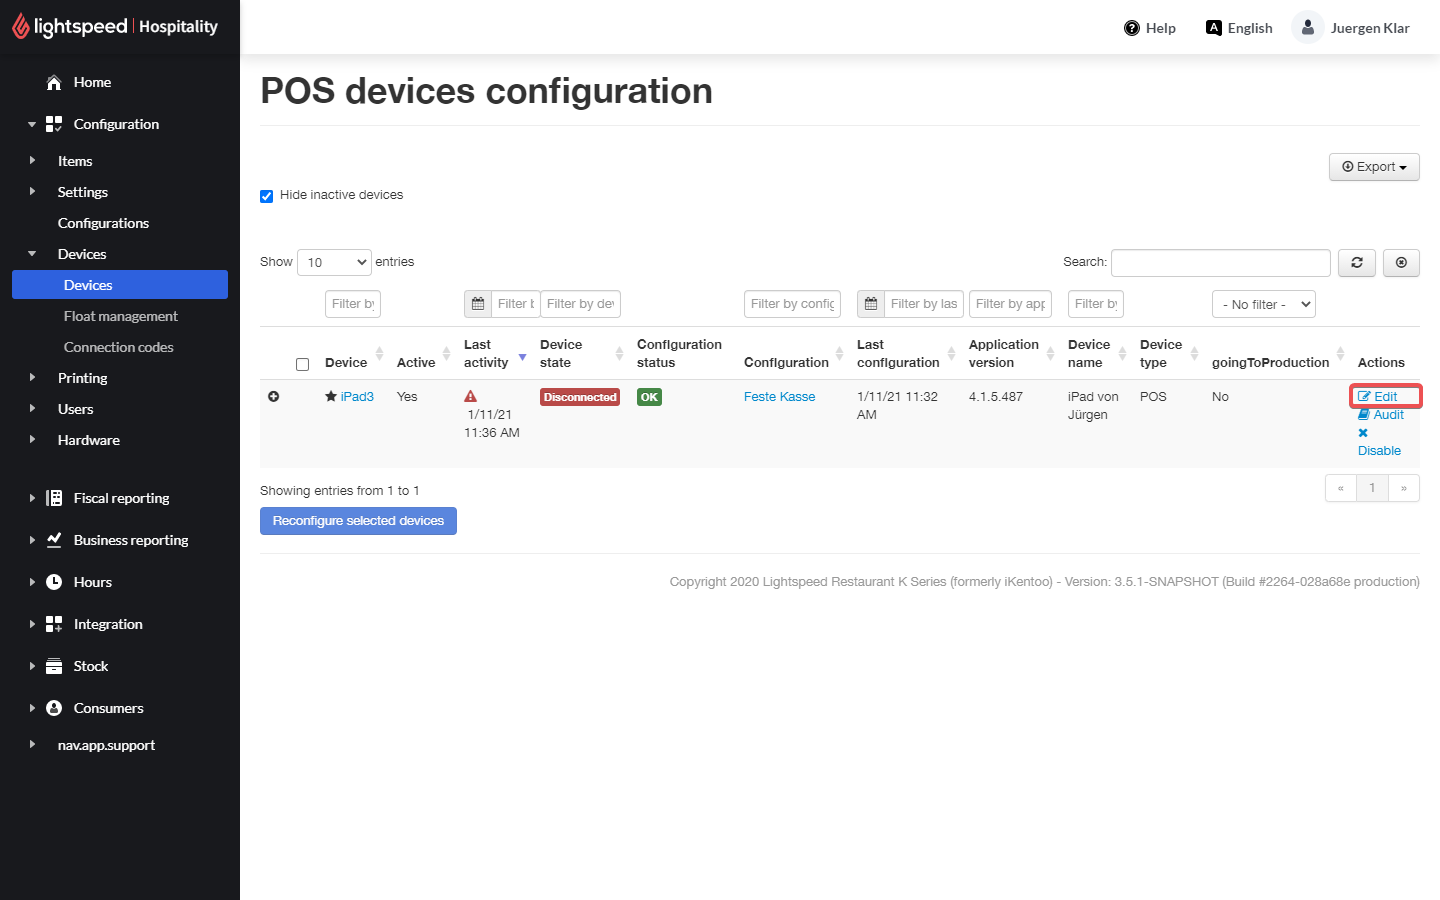 kseries-configuration-devices-devices-edit_link.png